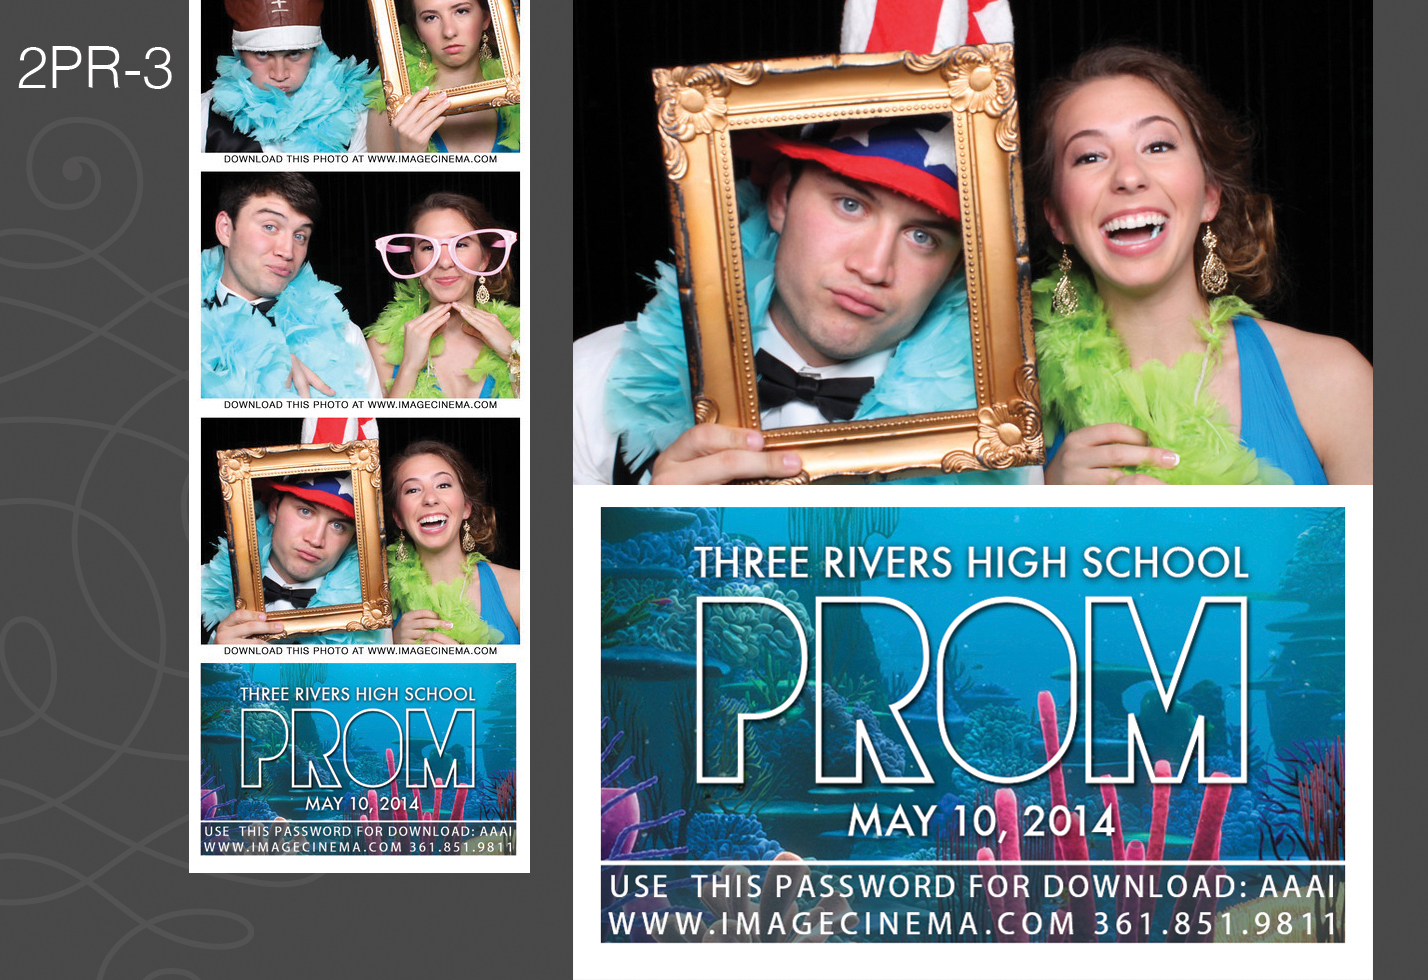 Photo Booth 2PR-3